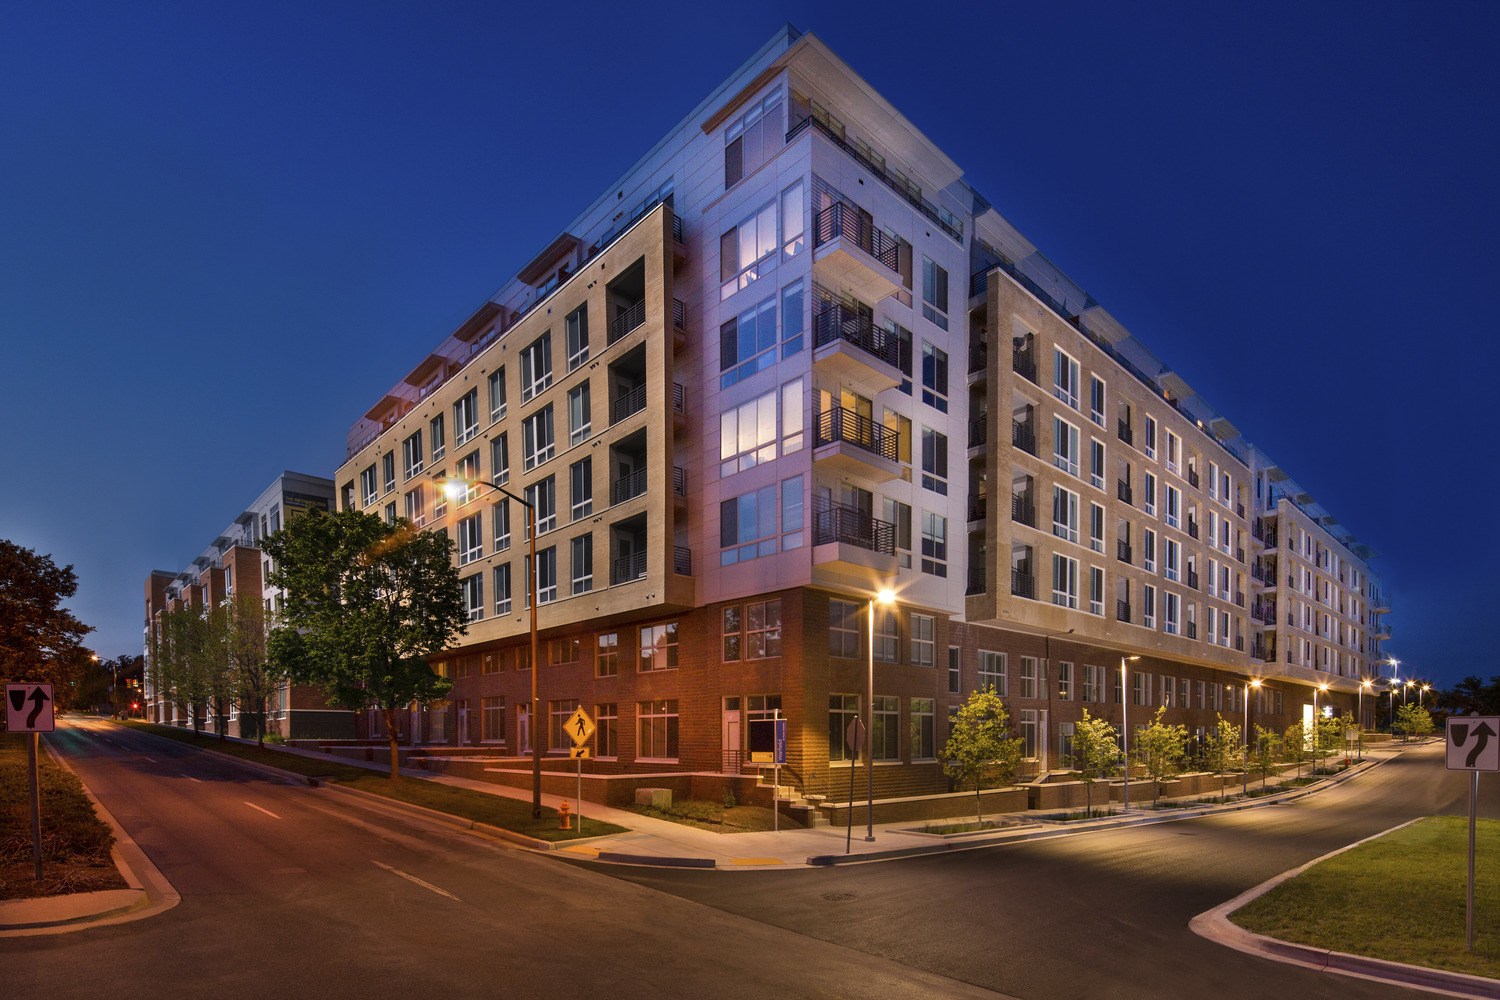 CBG builds The Metropolitan Downtown Columbia, a 380-Unit Mixed-Use Development with Parking Garage in Columbia, MD - Image #1